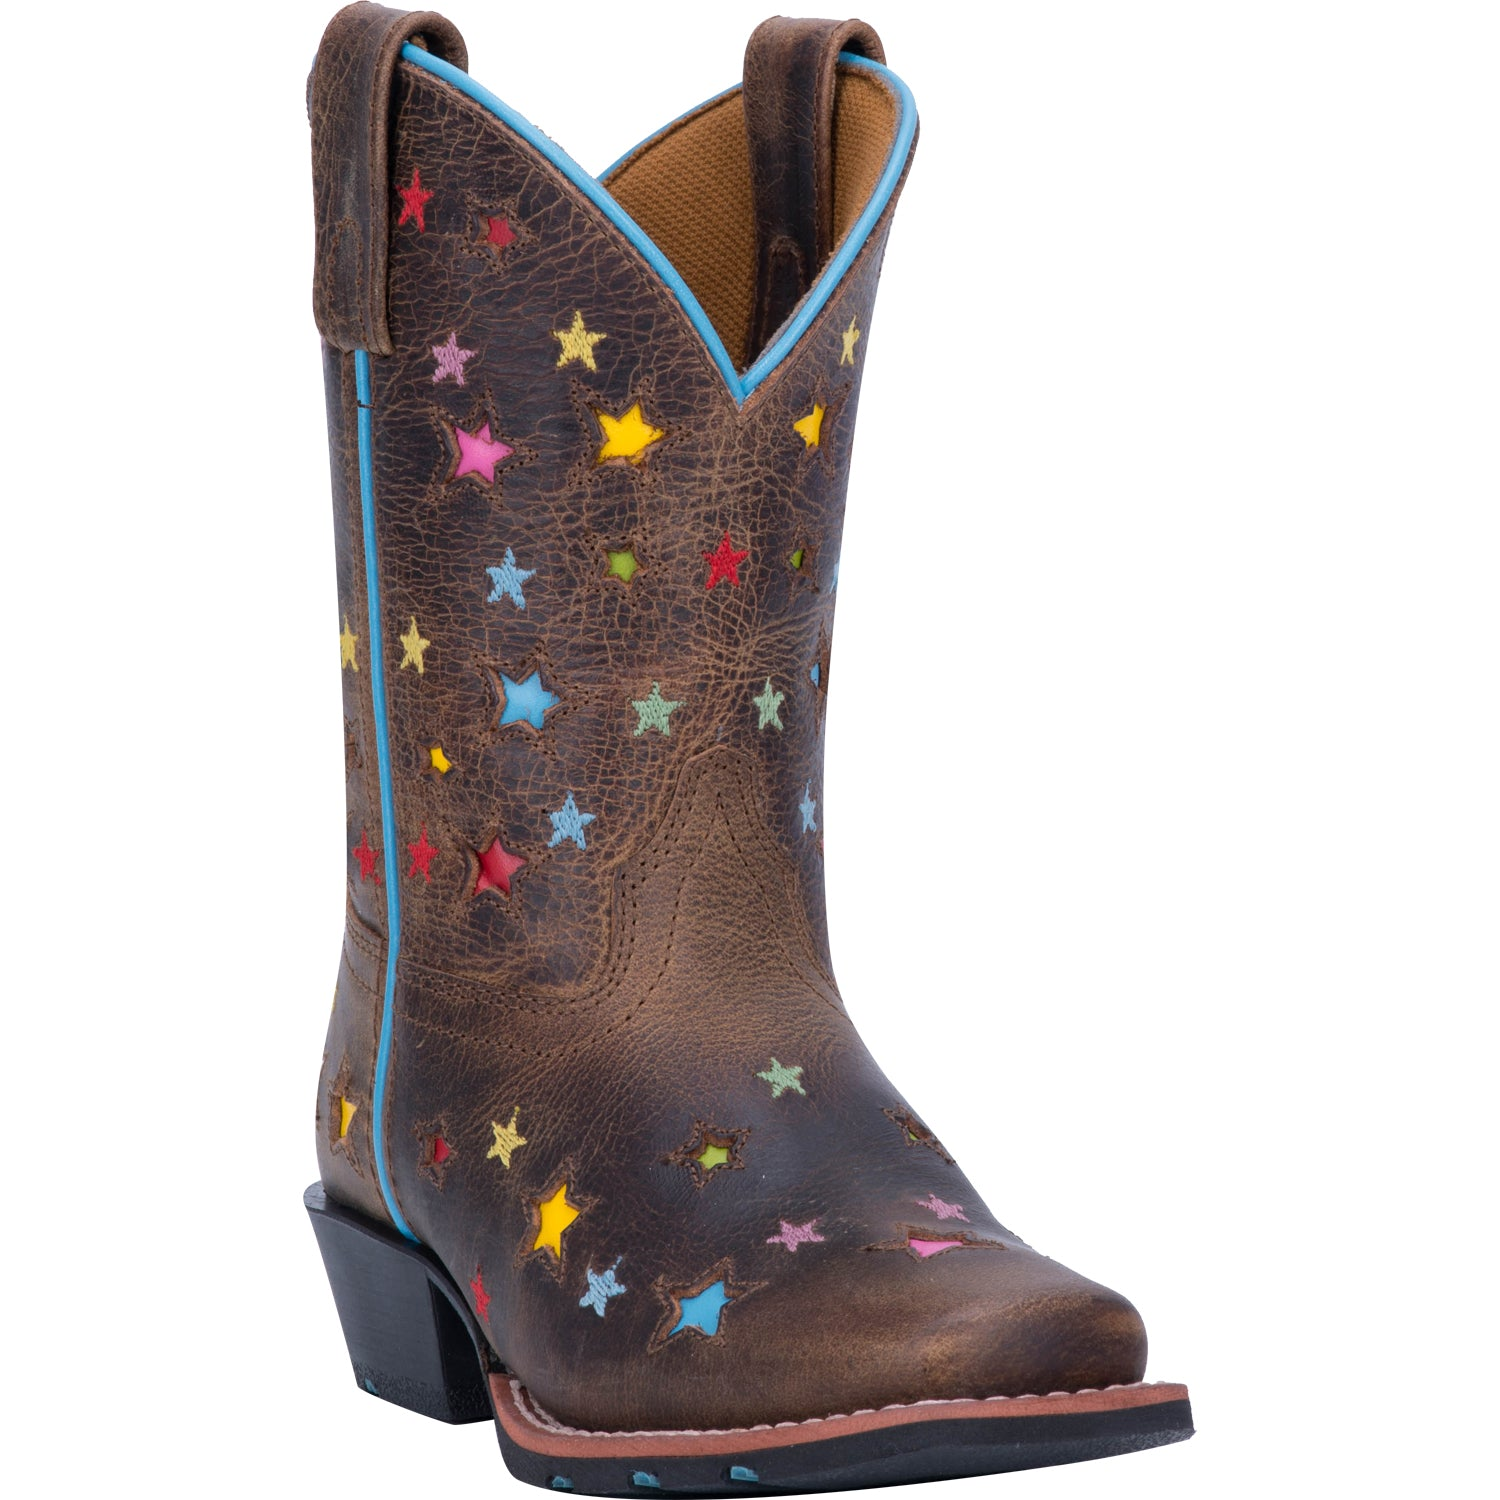 STARLETT LEATHER YOUTH BOOT 4197207769130